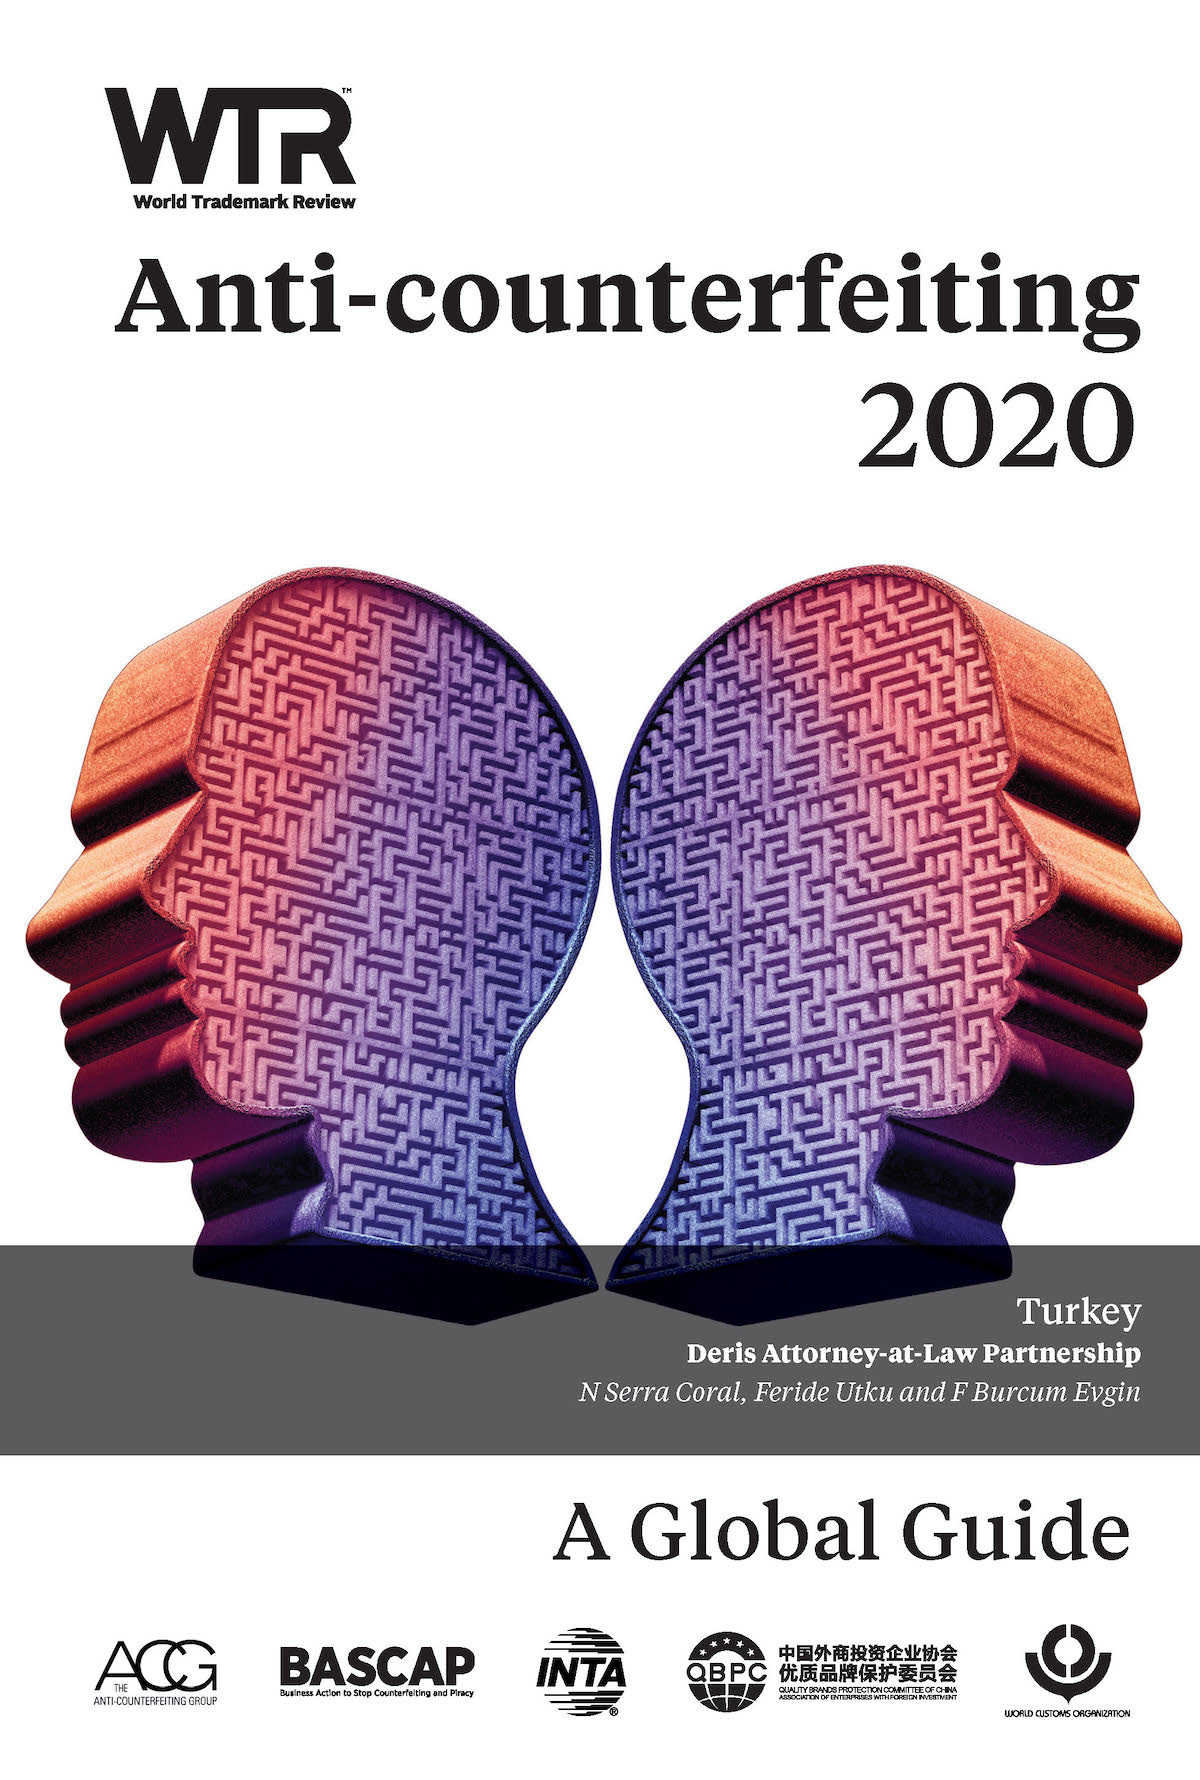 wtr anti counterfeiting a global guide 2020 contribution cover